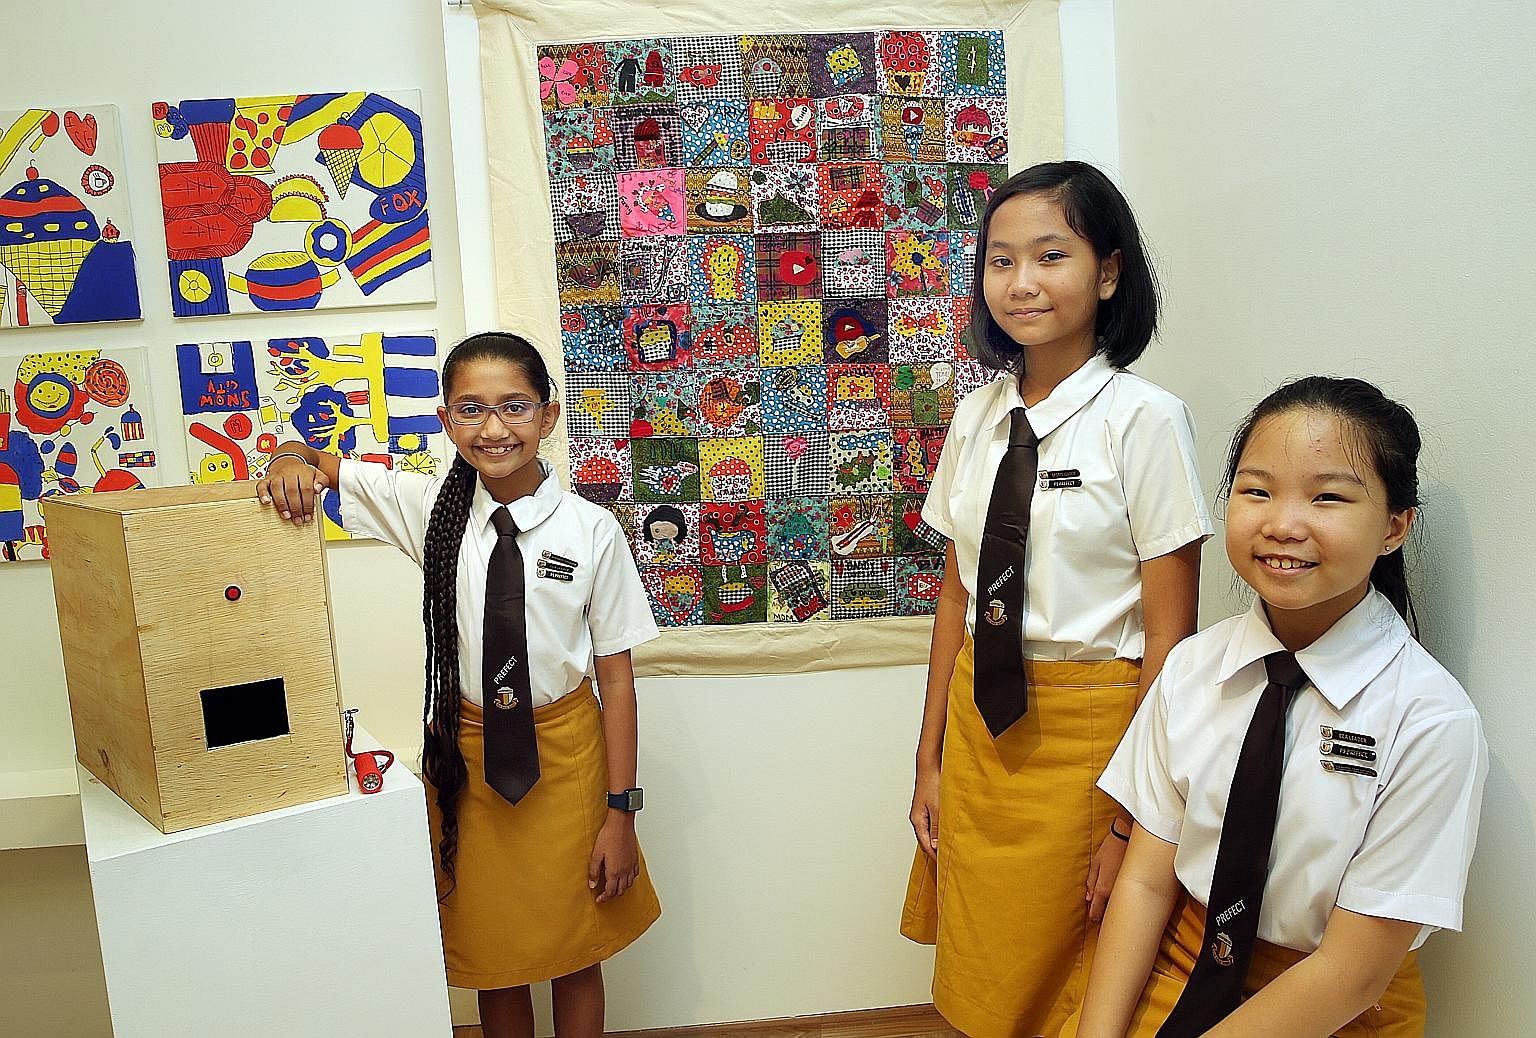 Jasneet Randhawa (far left) and Chantal Setyok with the patchwork quilt created by their class.